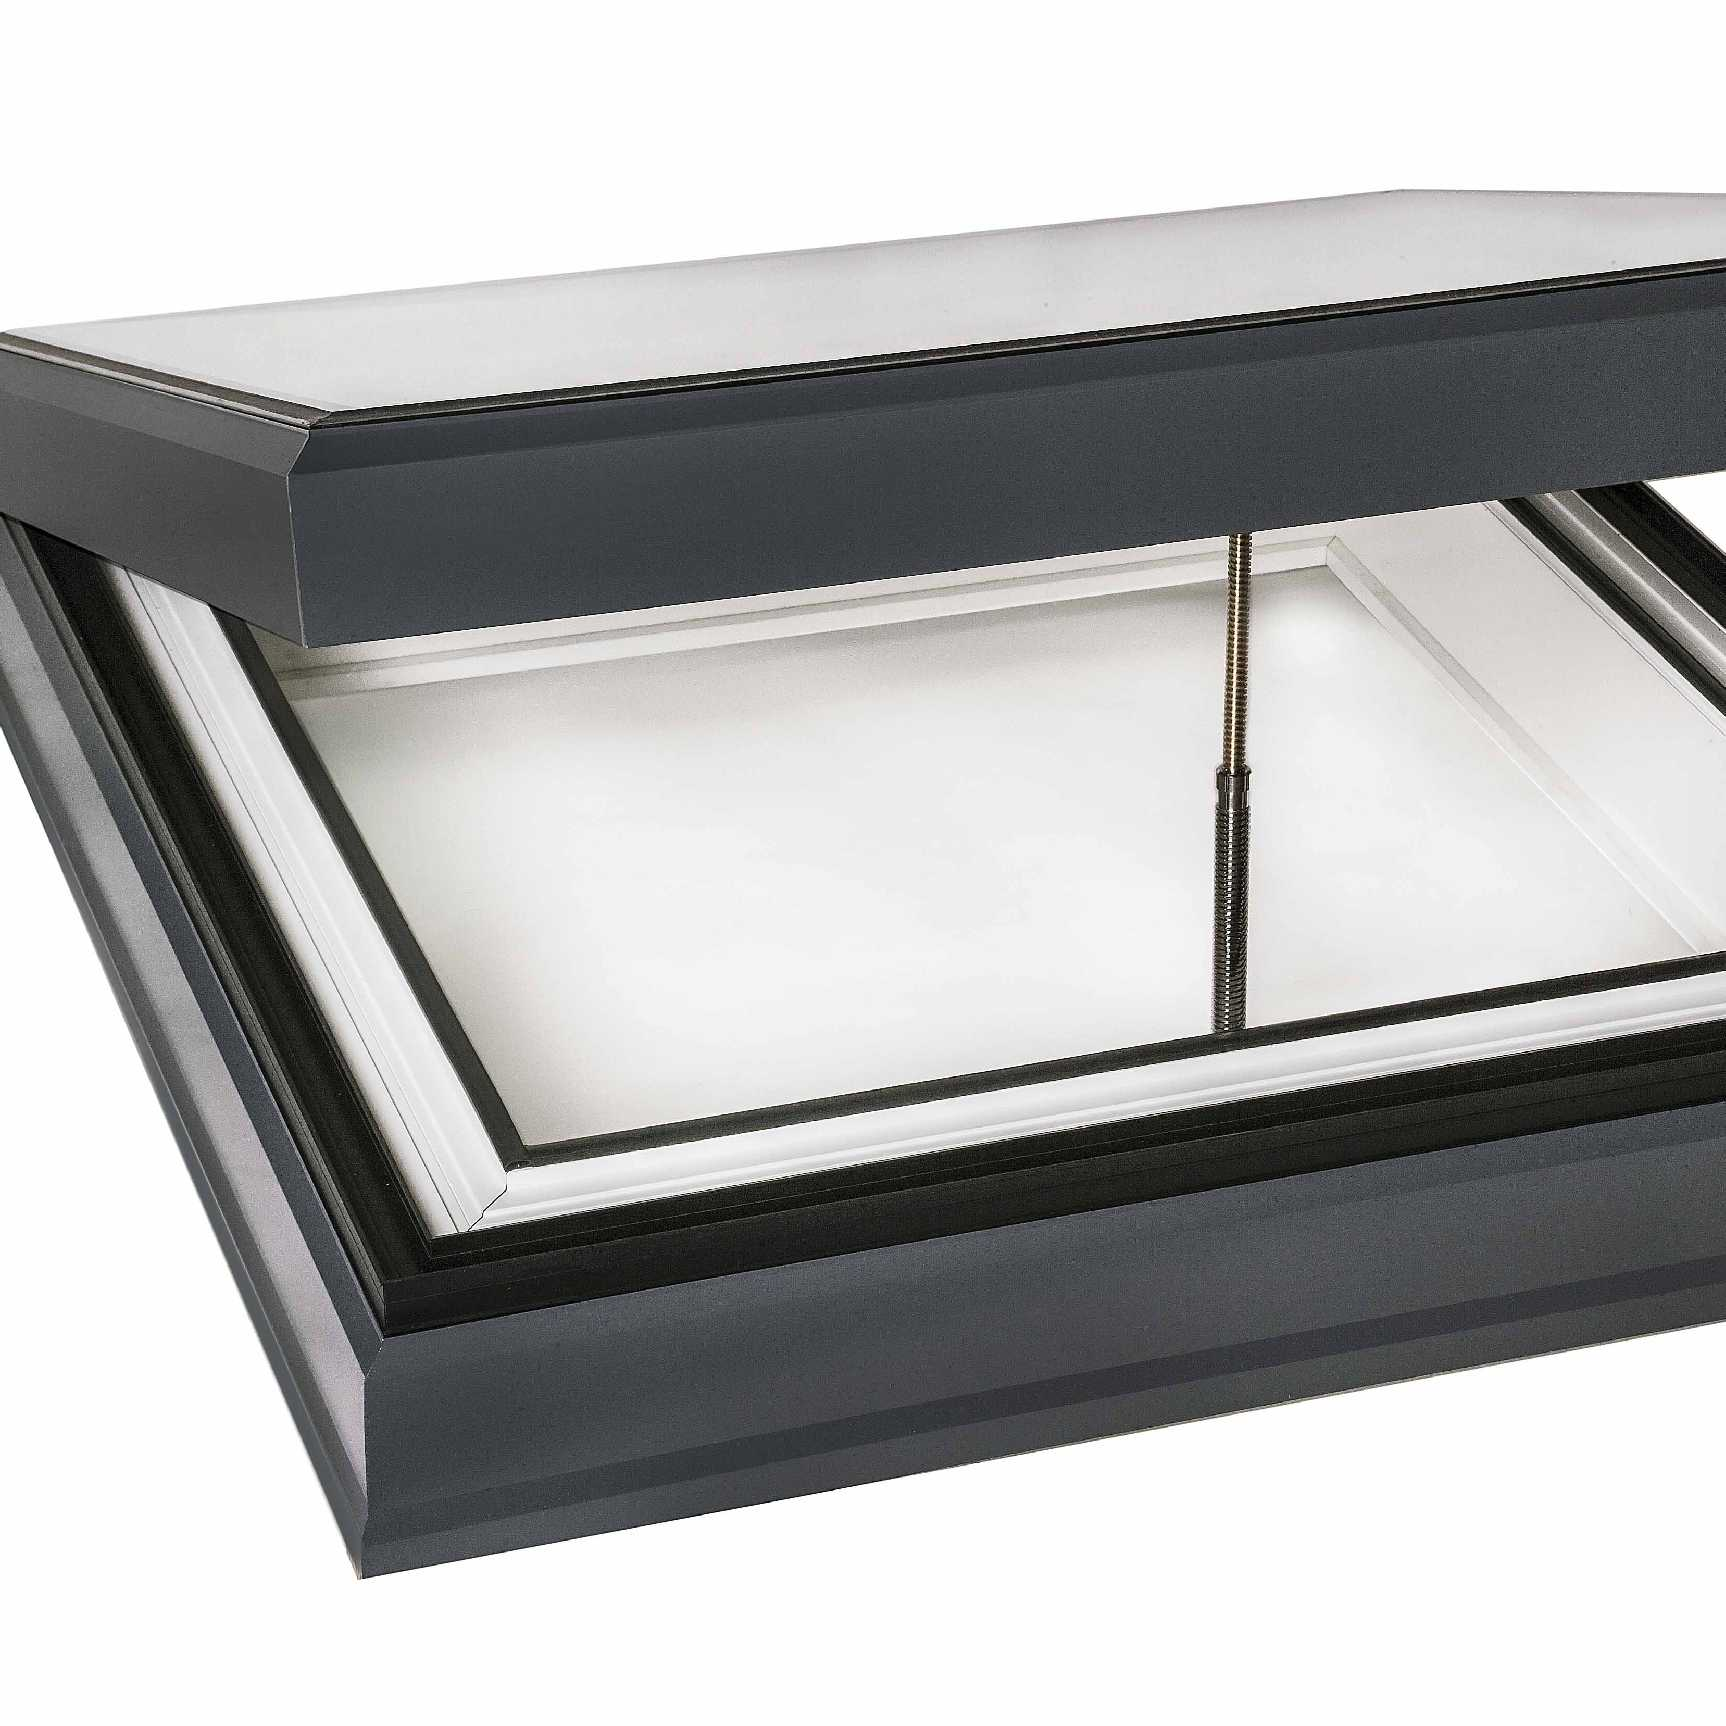 Great deals on EcoGard Flat Roof light, Triple Glazed, Electric Opening, 1,000mm x 1,000mm